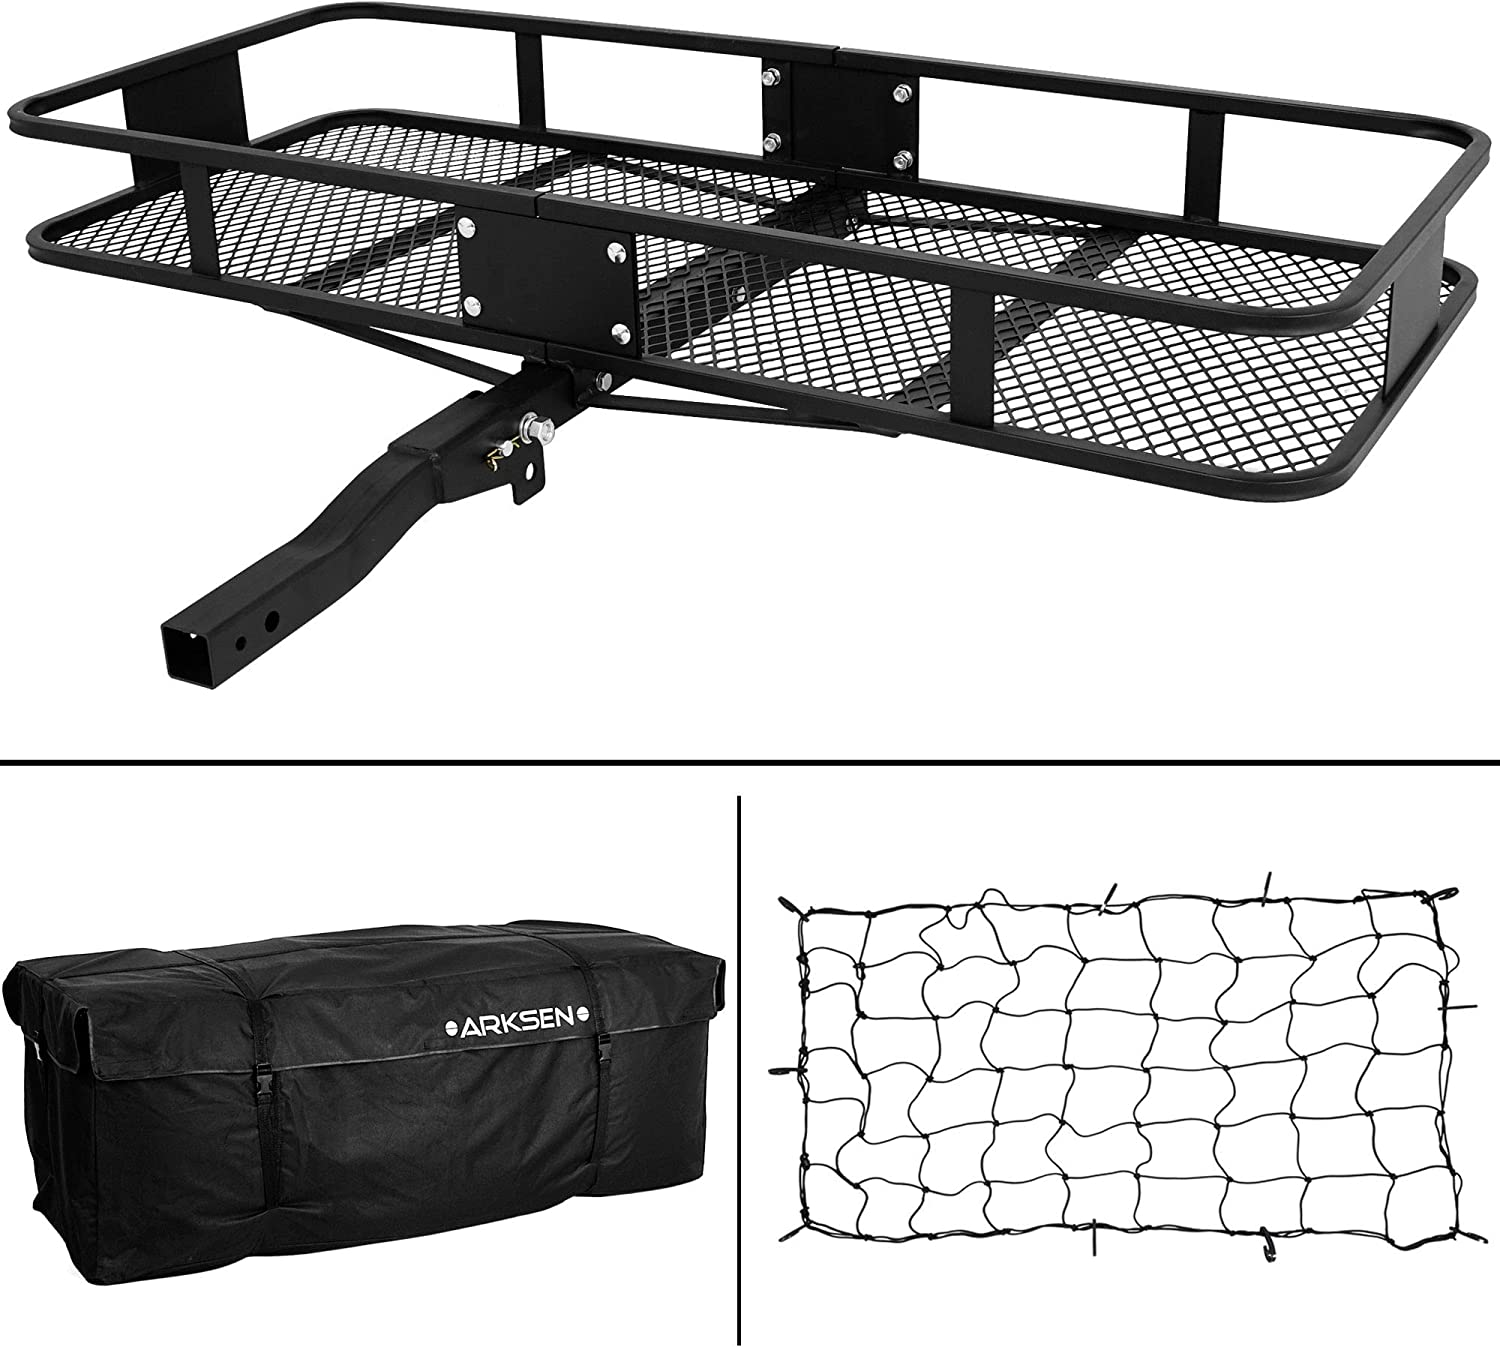 Black 500LBS Capacity Camp Travel Fold Up SUV Camping ARKSEN Folding Cargo Carrier Luggage Basket 2 Receiver Hitch Mount 60 x 20 inch